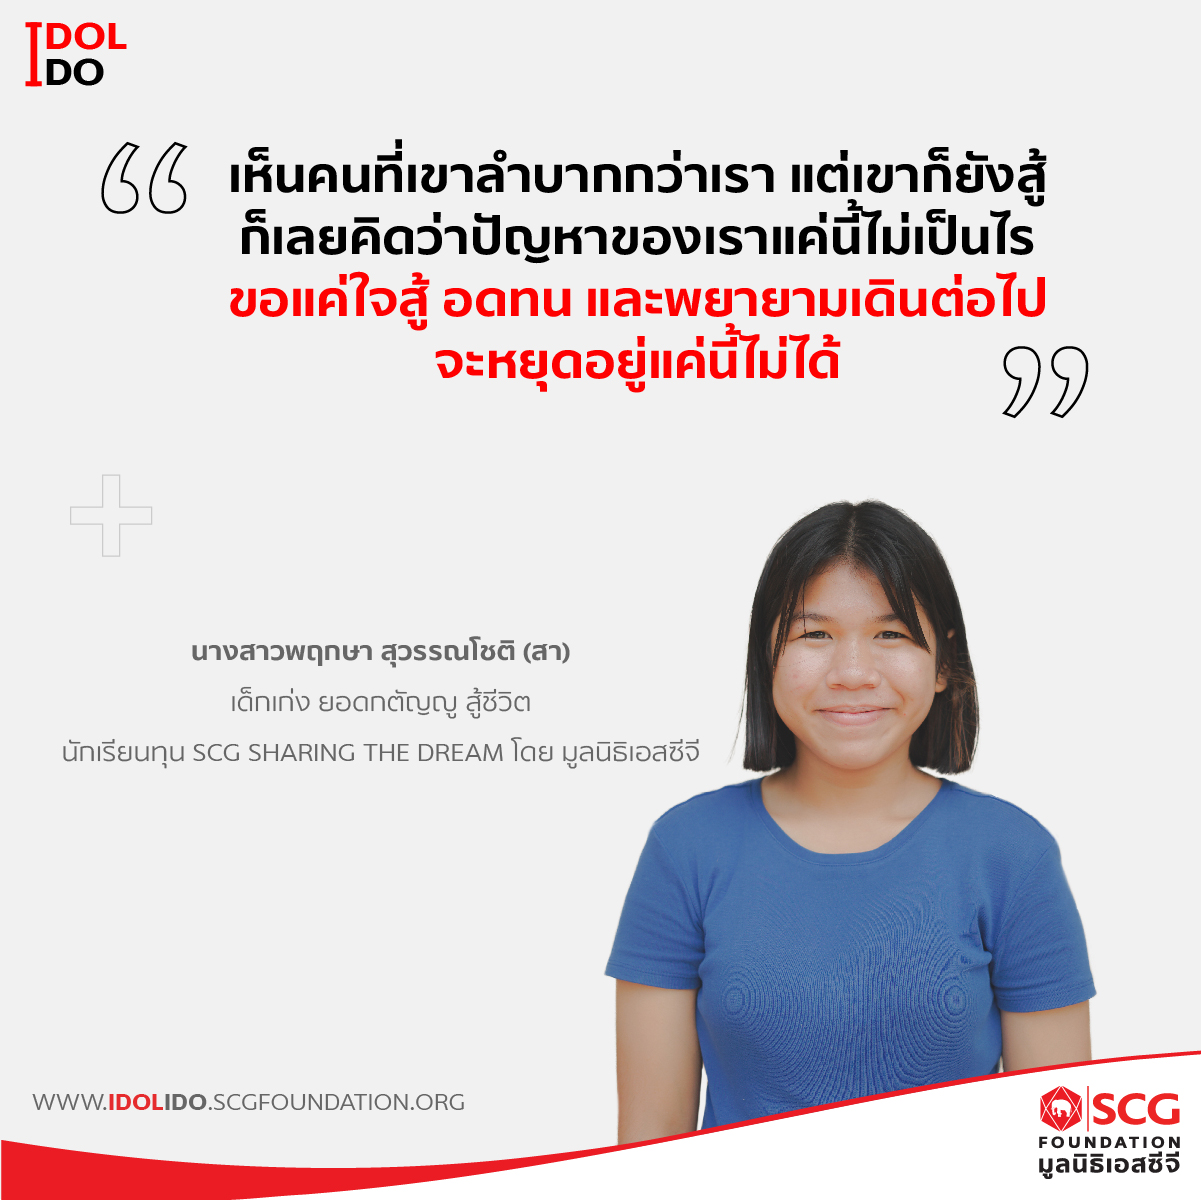 AW_Website_SCGF_Page_Goal_on_สา-01